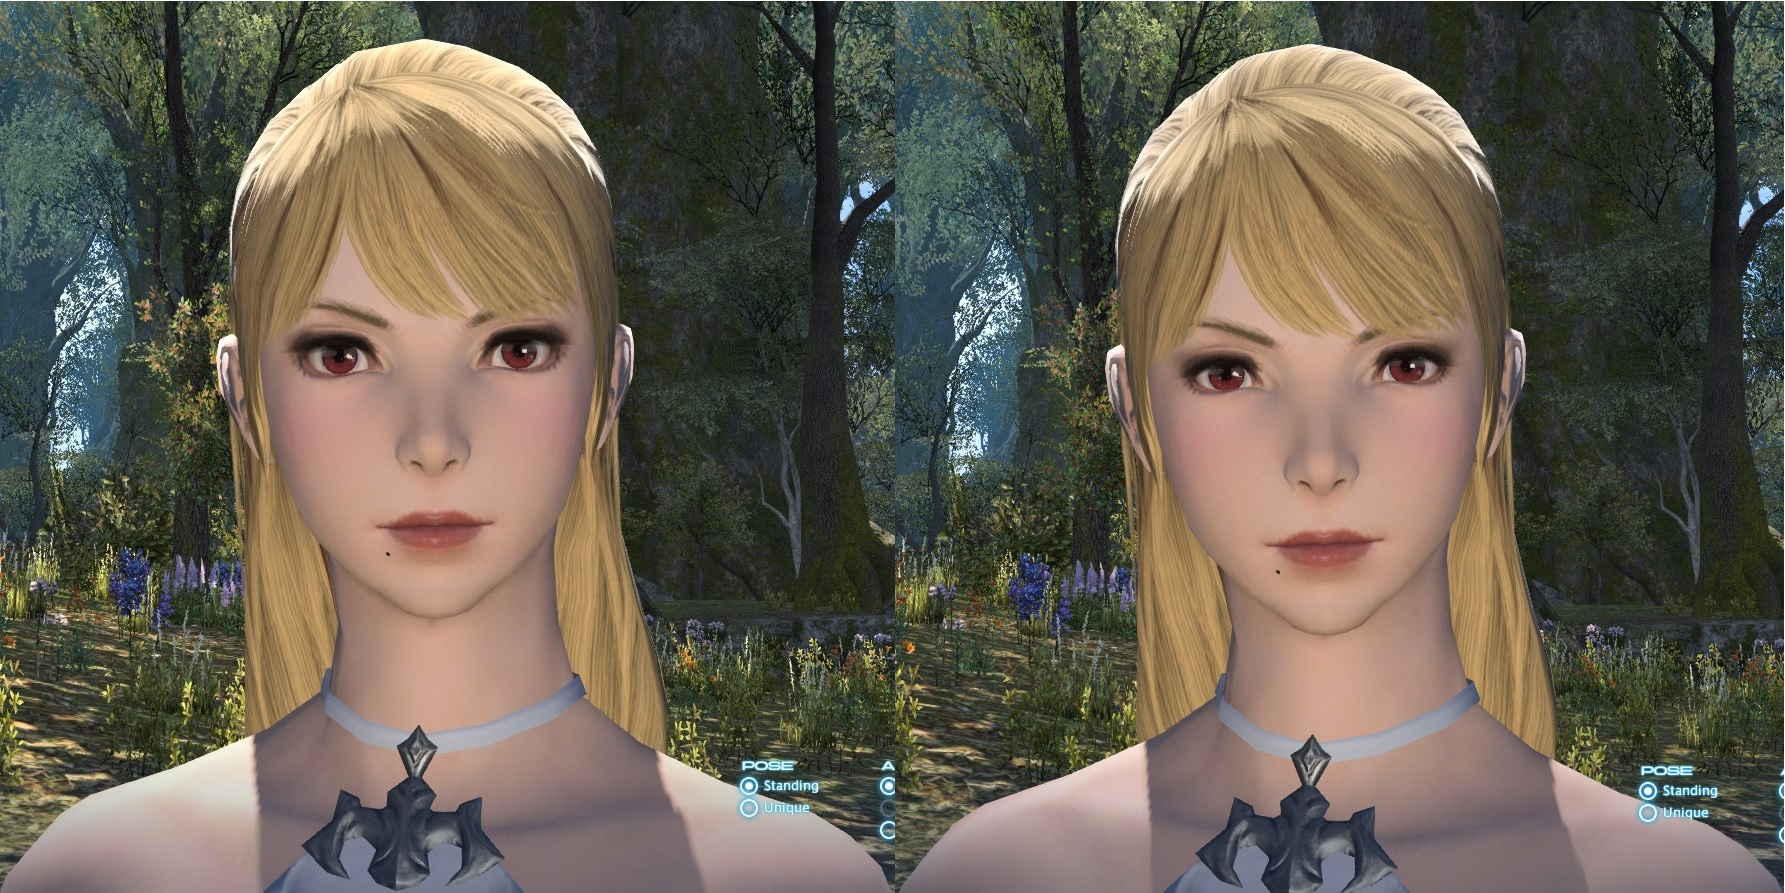 kachiko ffxiv this hair ffxi character like color what green more help pinkish look akin cause laughing stop cannot eyesmouth expression website official best here found also actually match recreating grown accustomed quite personally pictures your benchmark going heres style just char post slightly darker edit2 pinkredish